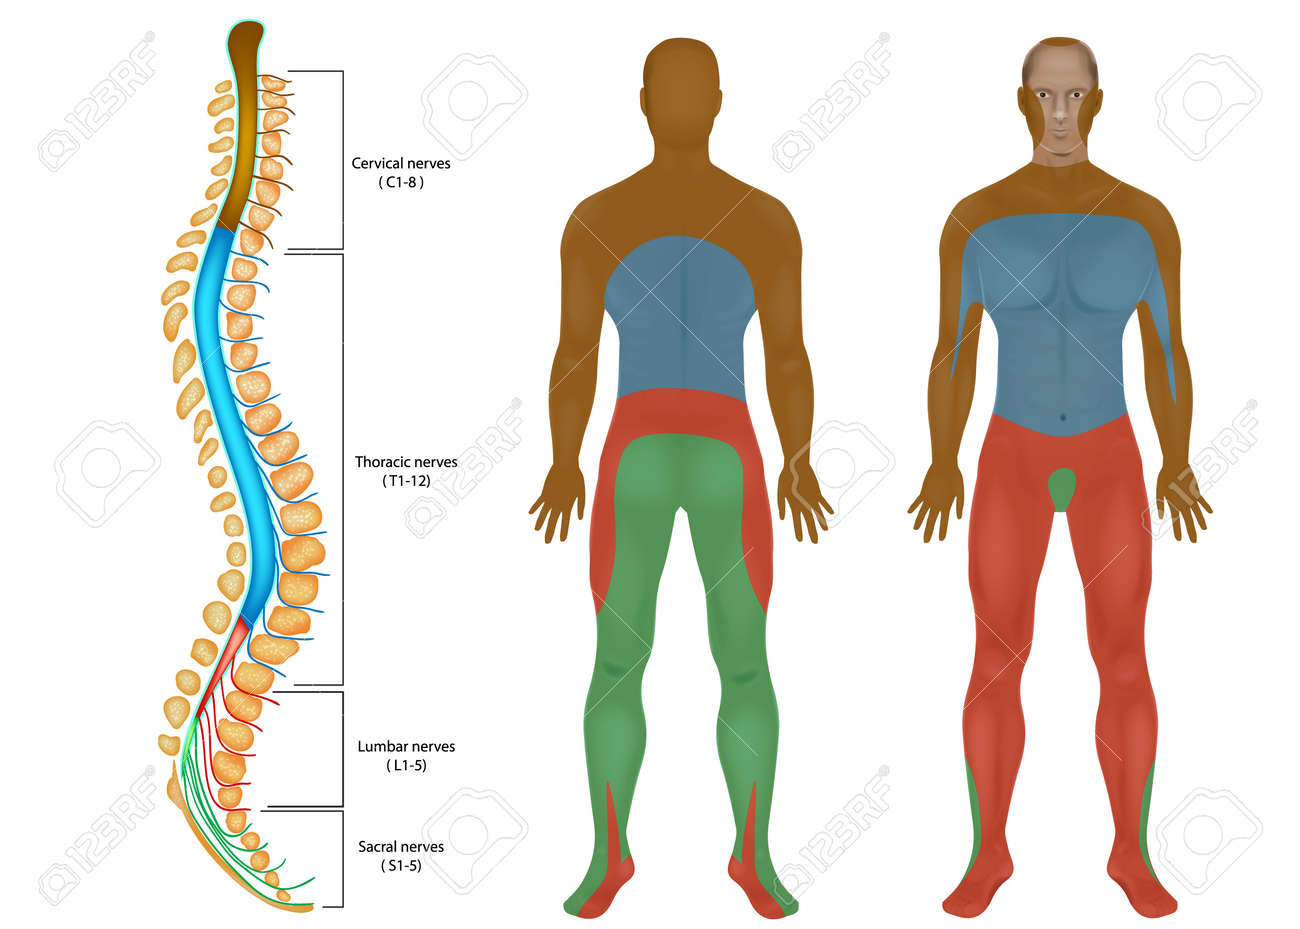 hight resolution of spinal nerves chart spinal cord peripheral nervous system spinal nerves diagram images spinal nerves chart spinal